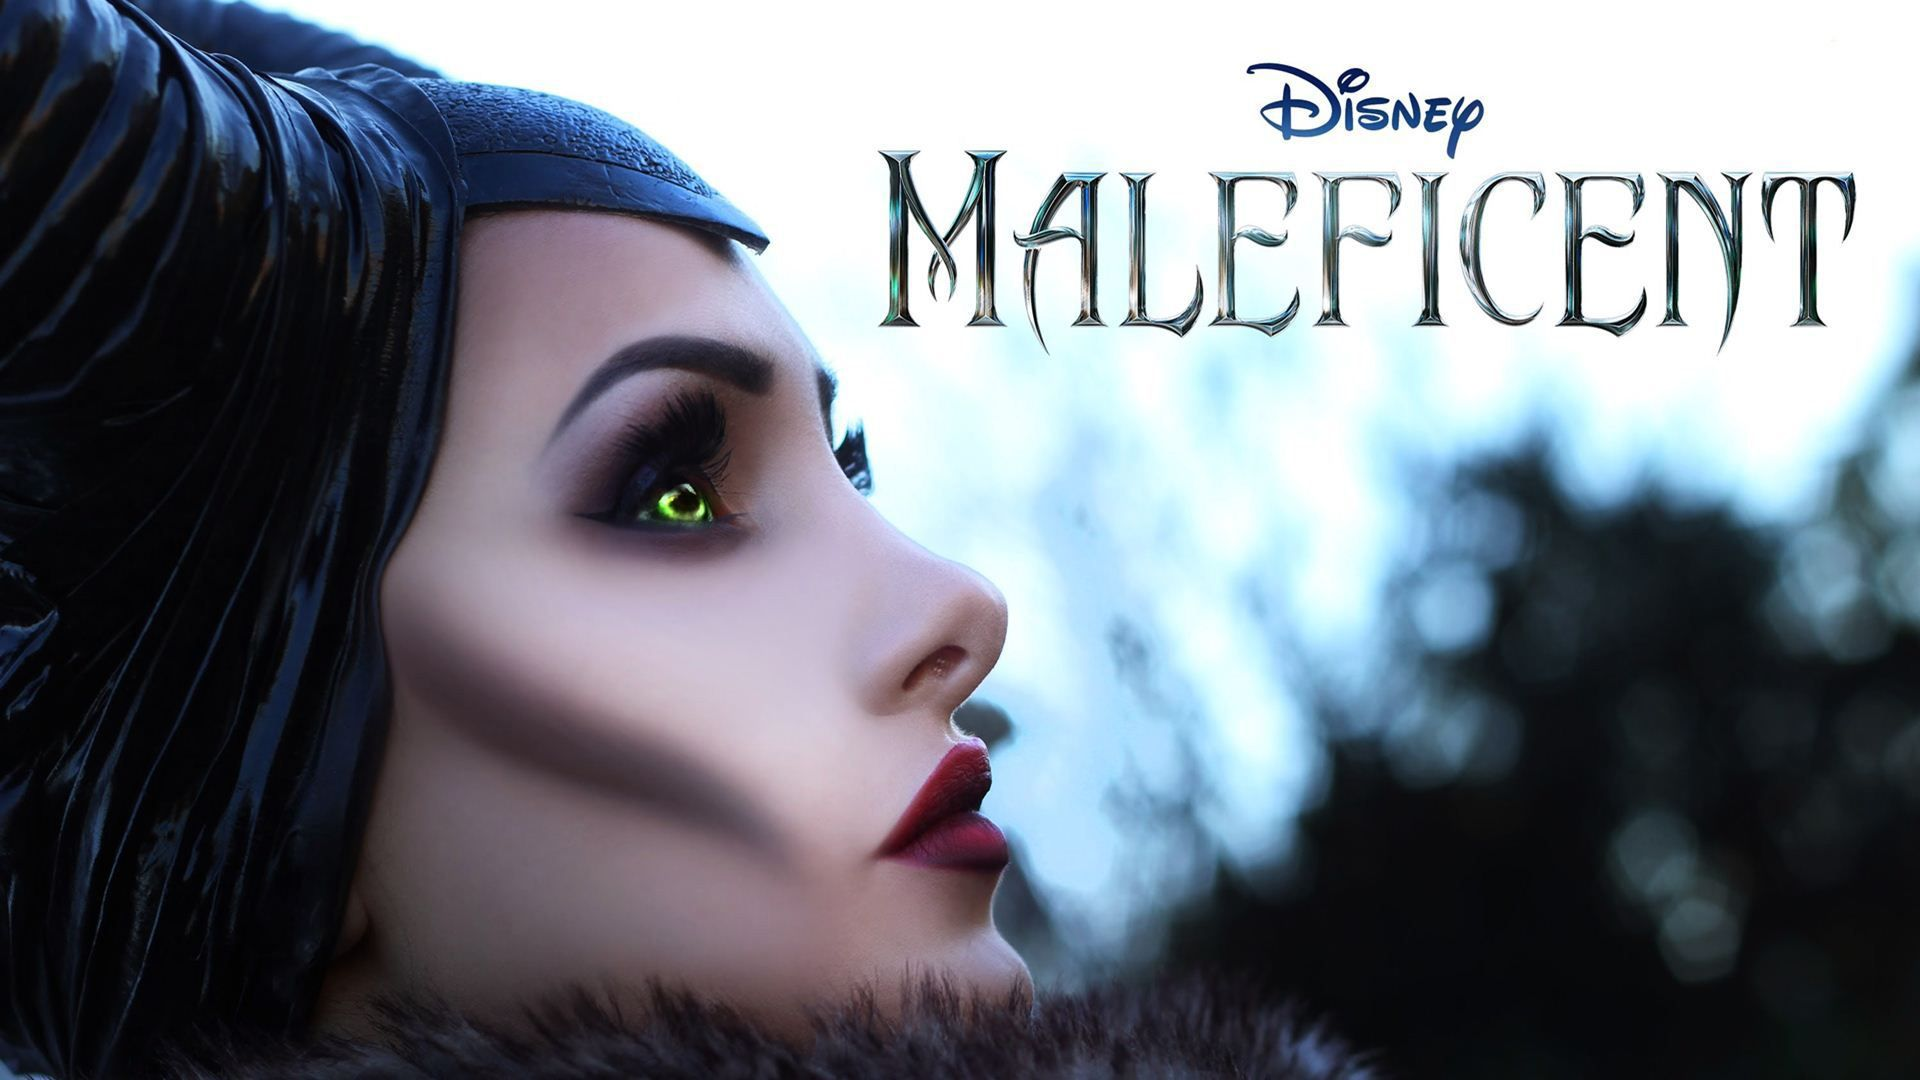 Maleficent Movie Wallpapers Hd Wallpapers Available In